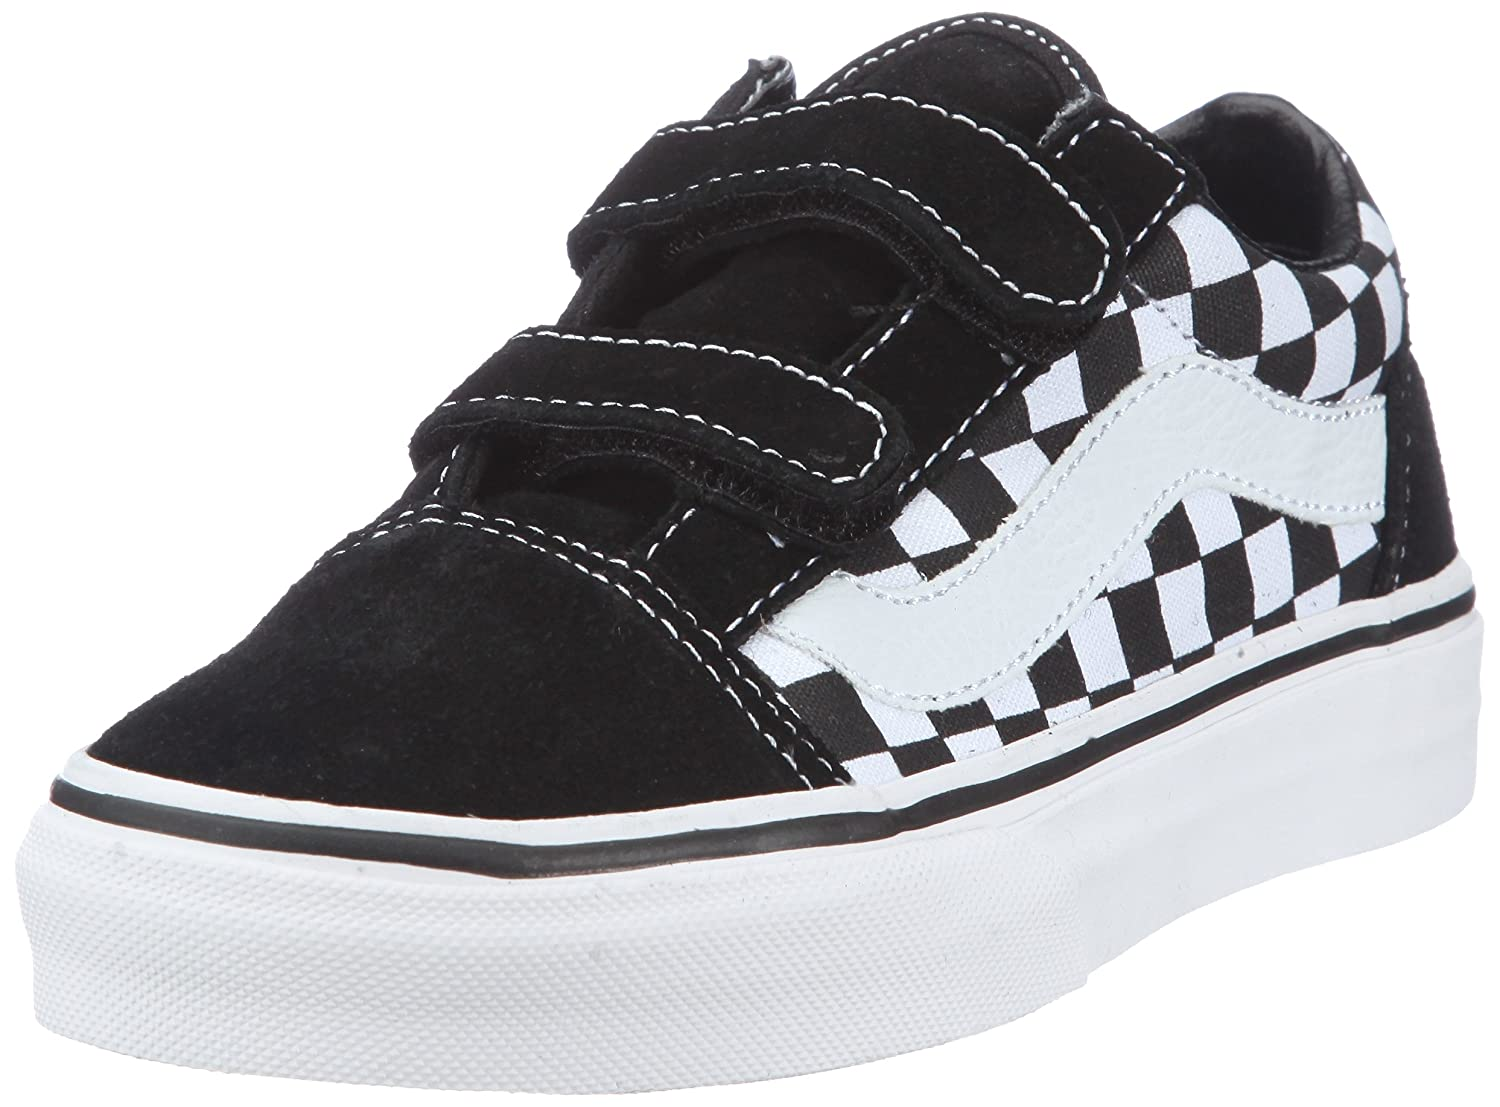 Vans Kids Old Skool V Checkerboard Black White Vn-0d3z5gu vans рюкзак vans old skool ii classic camo